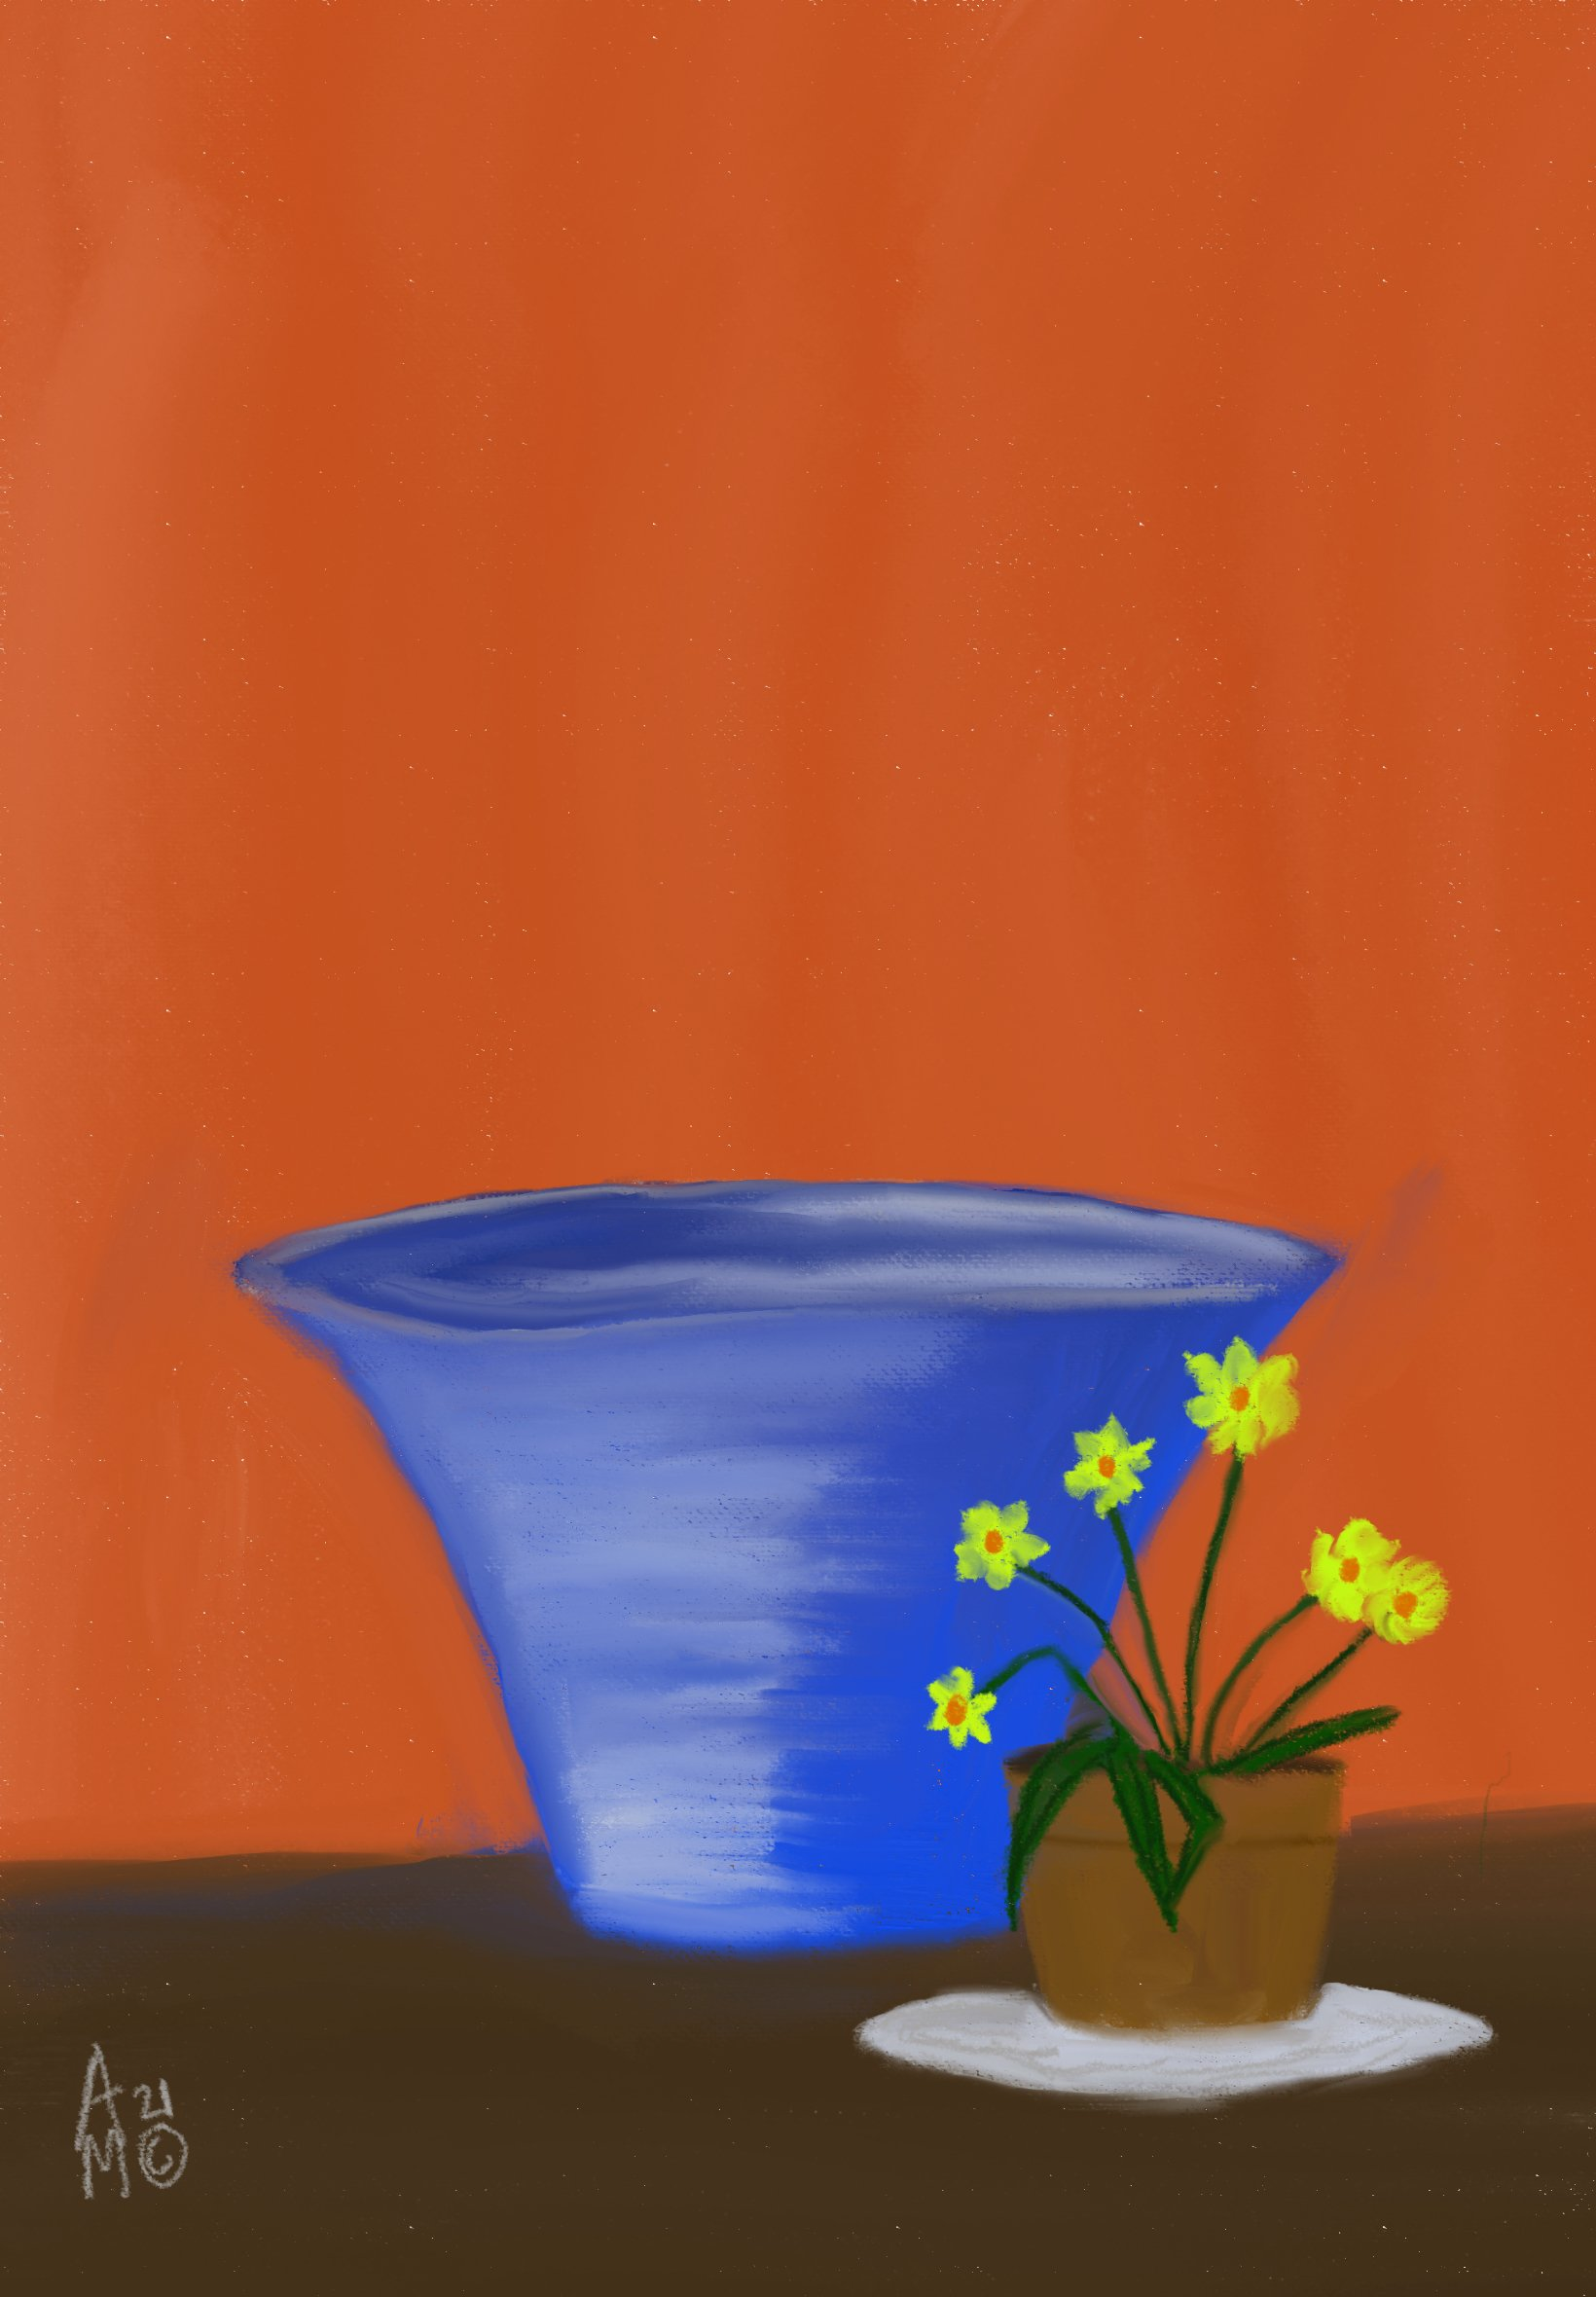 blue crystal vase with yellow flowers (2021)